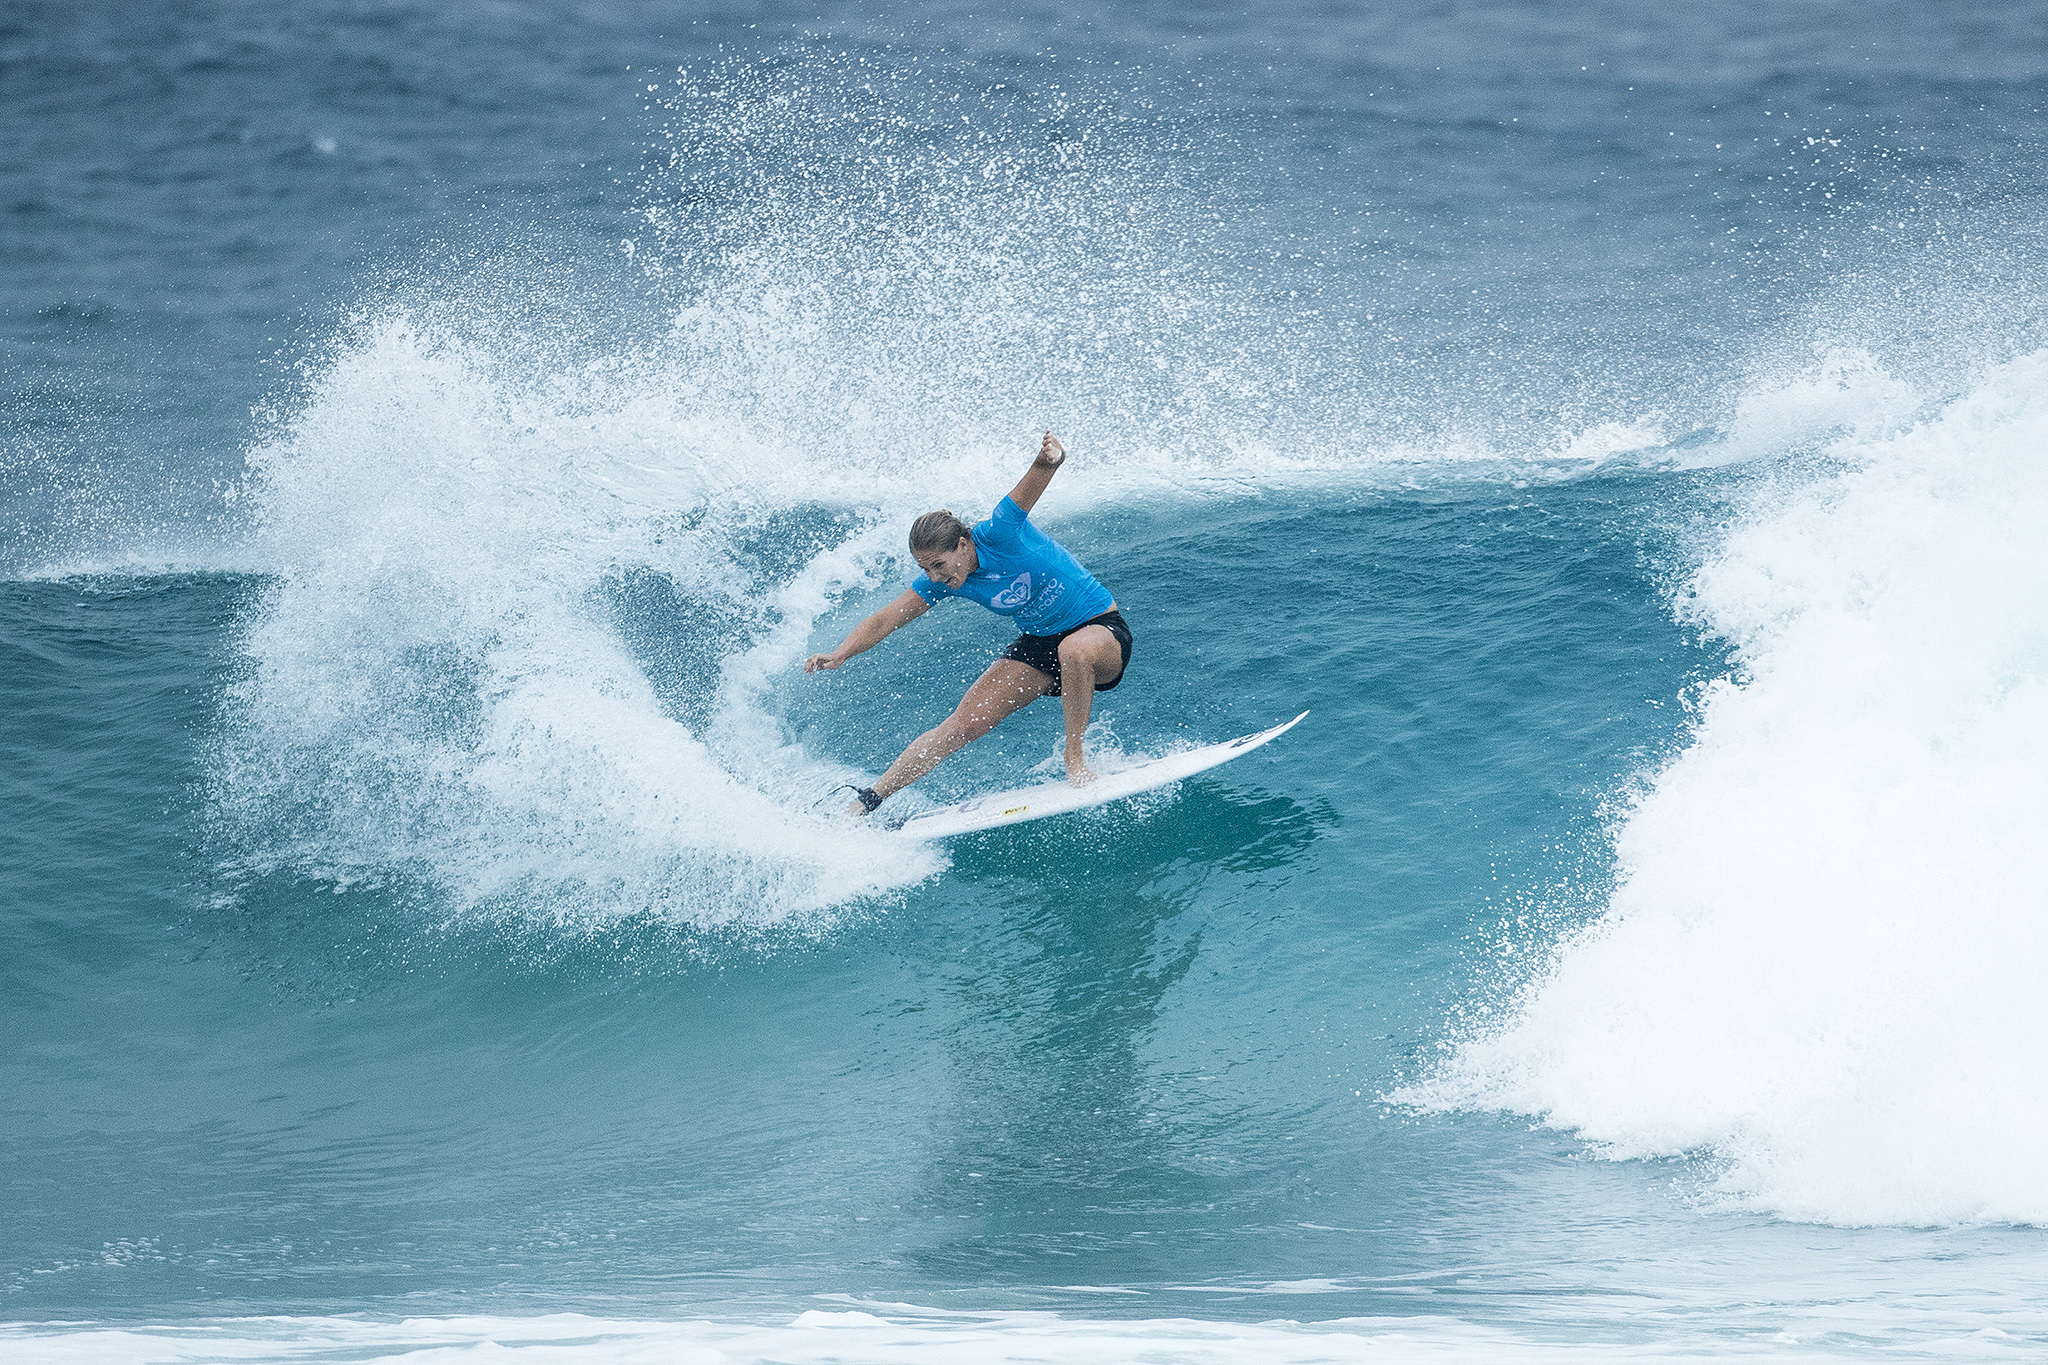 78efd72395 OWEN WRIGHT AND STEPHANIE GILMORE WIN QUIKSILVER AND ROXY PRO GOLD ...